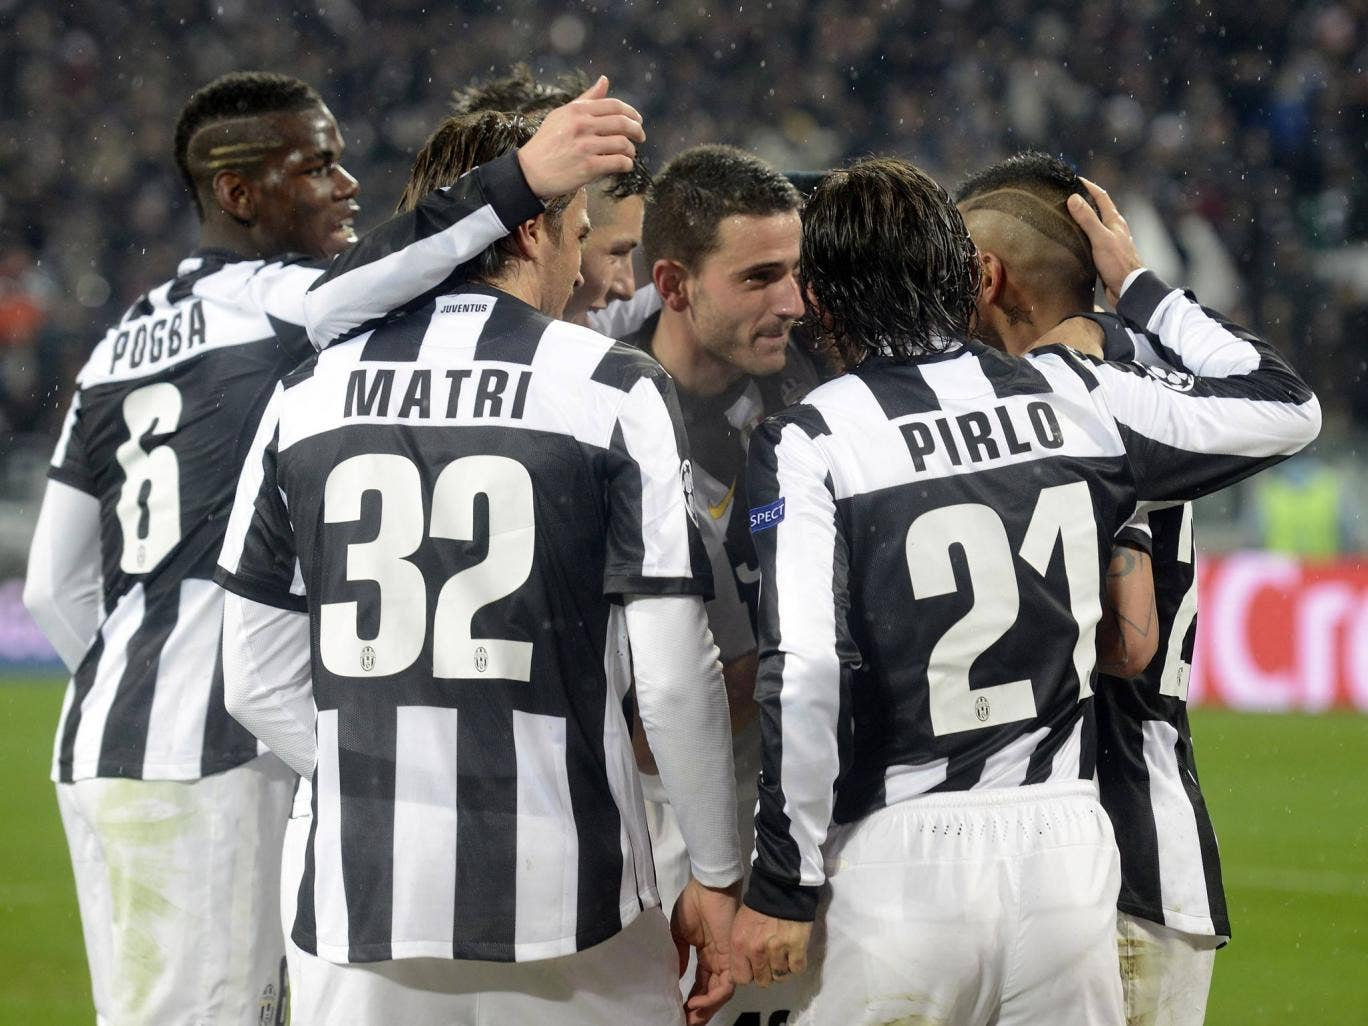 Andrea Pirlo and his Juventus team-mates celebrate during their victory over Celtic in the Champions League